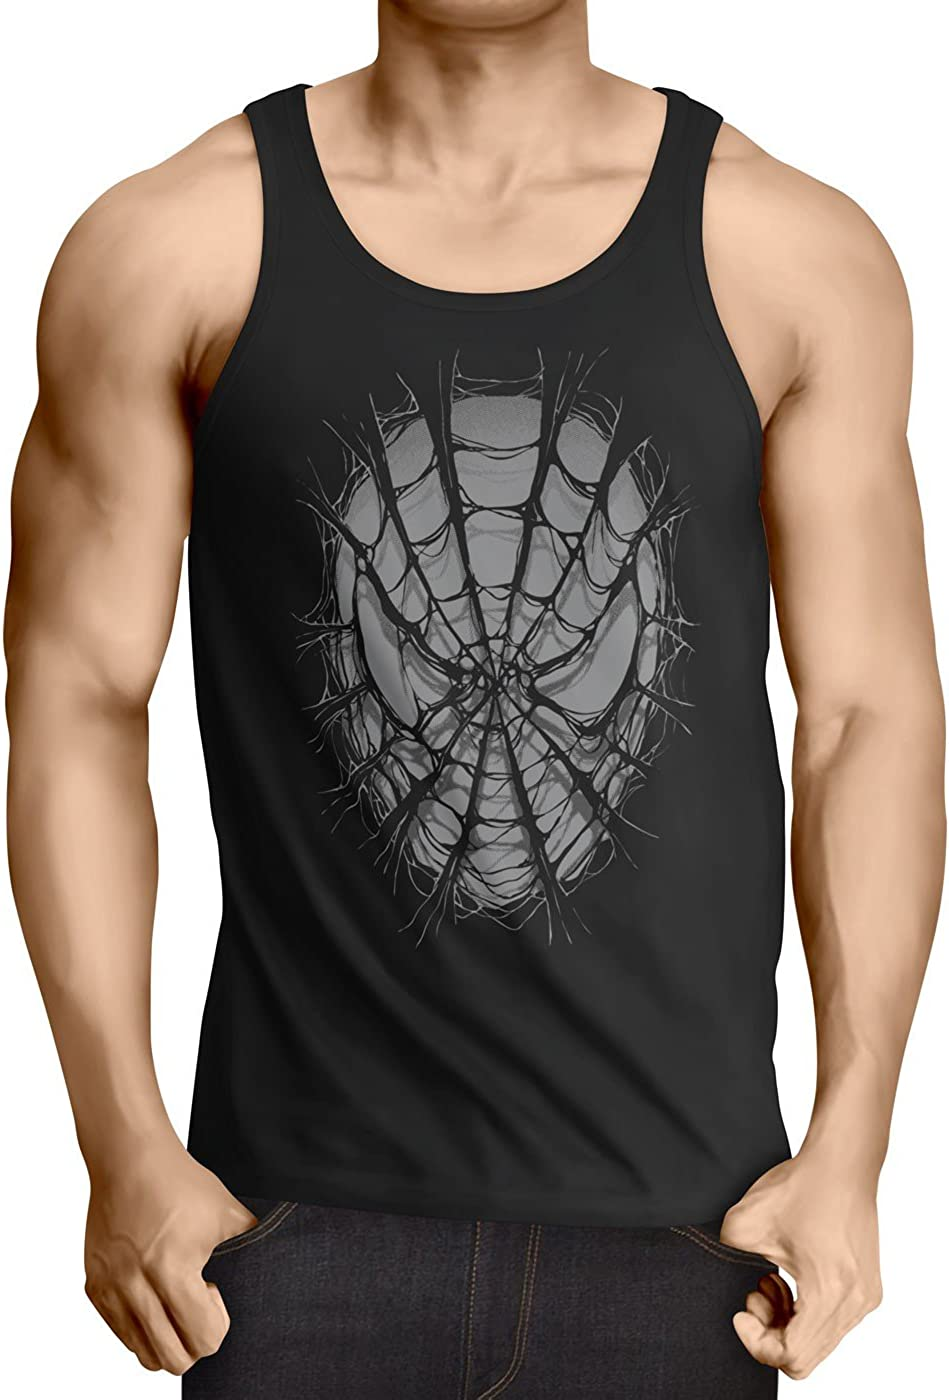 style3 Spider Web T-Shirt Homme man toile daraign/ée the amazing comic